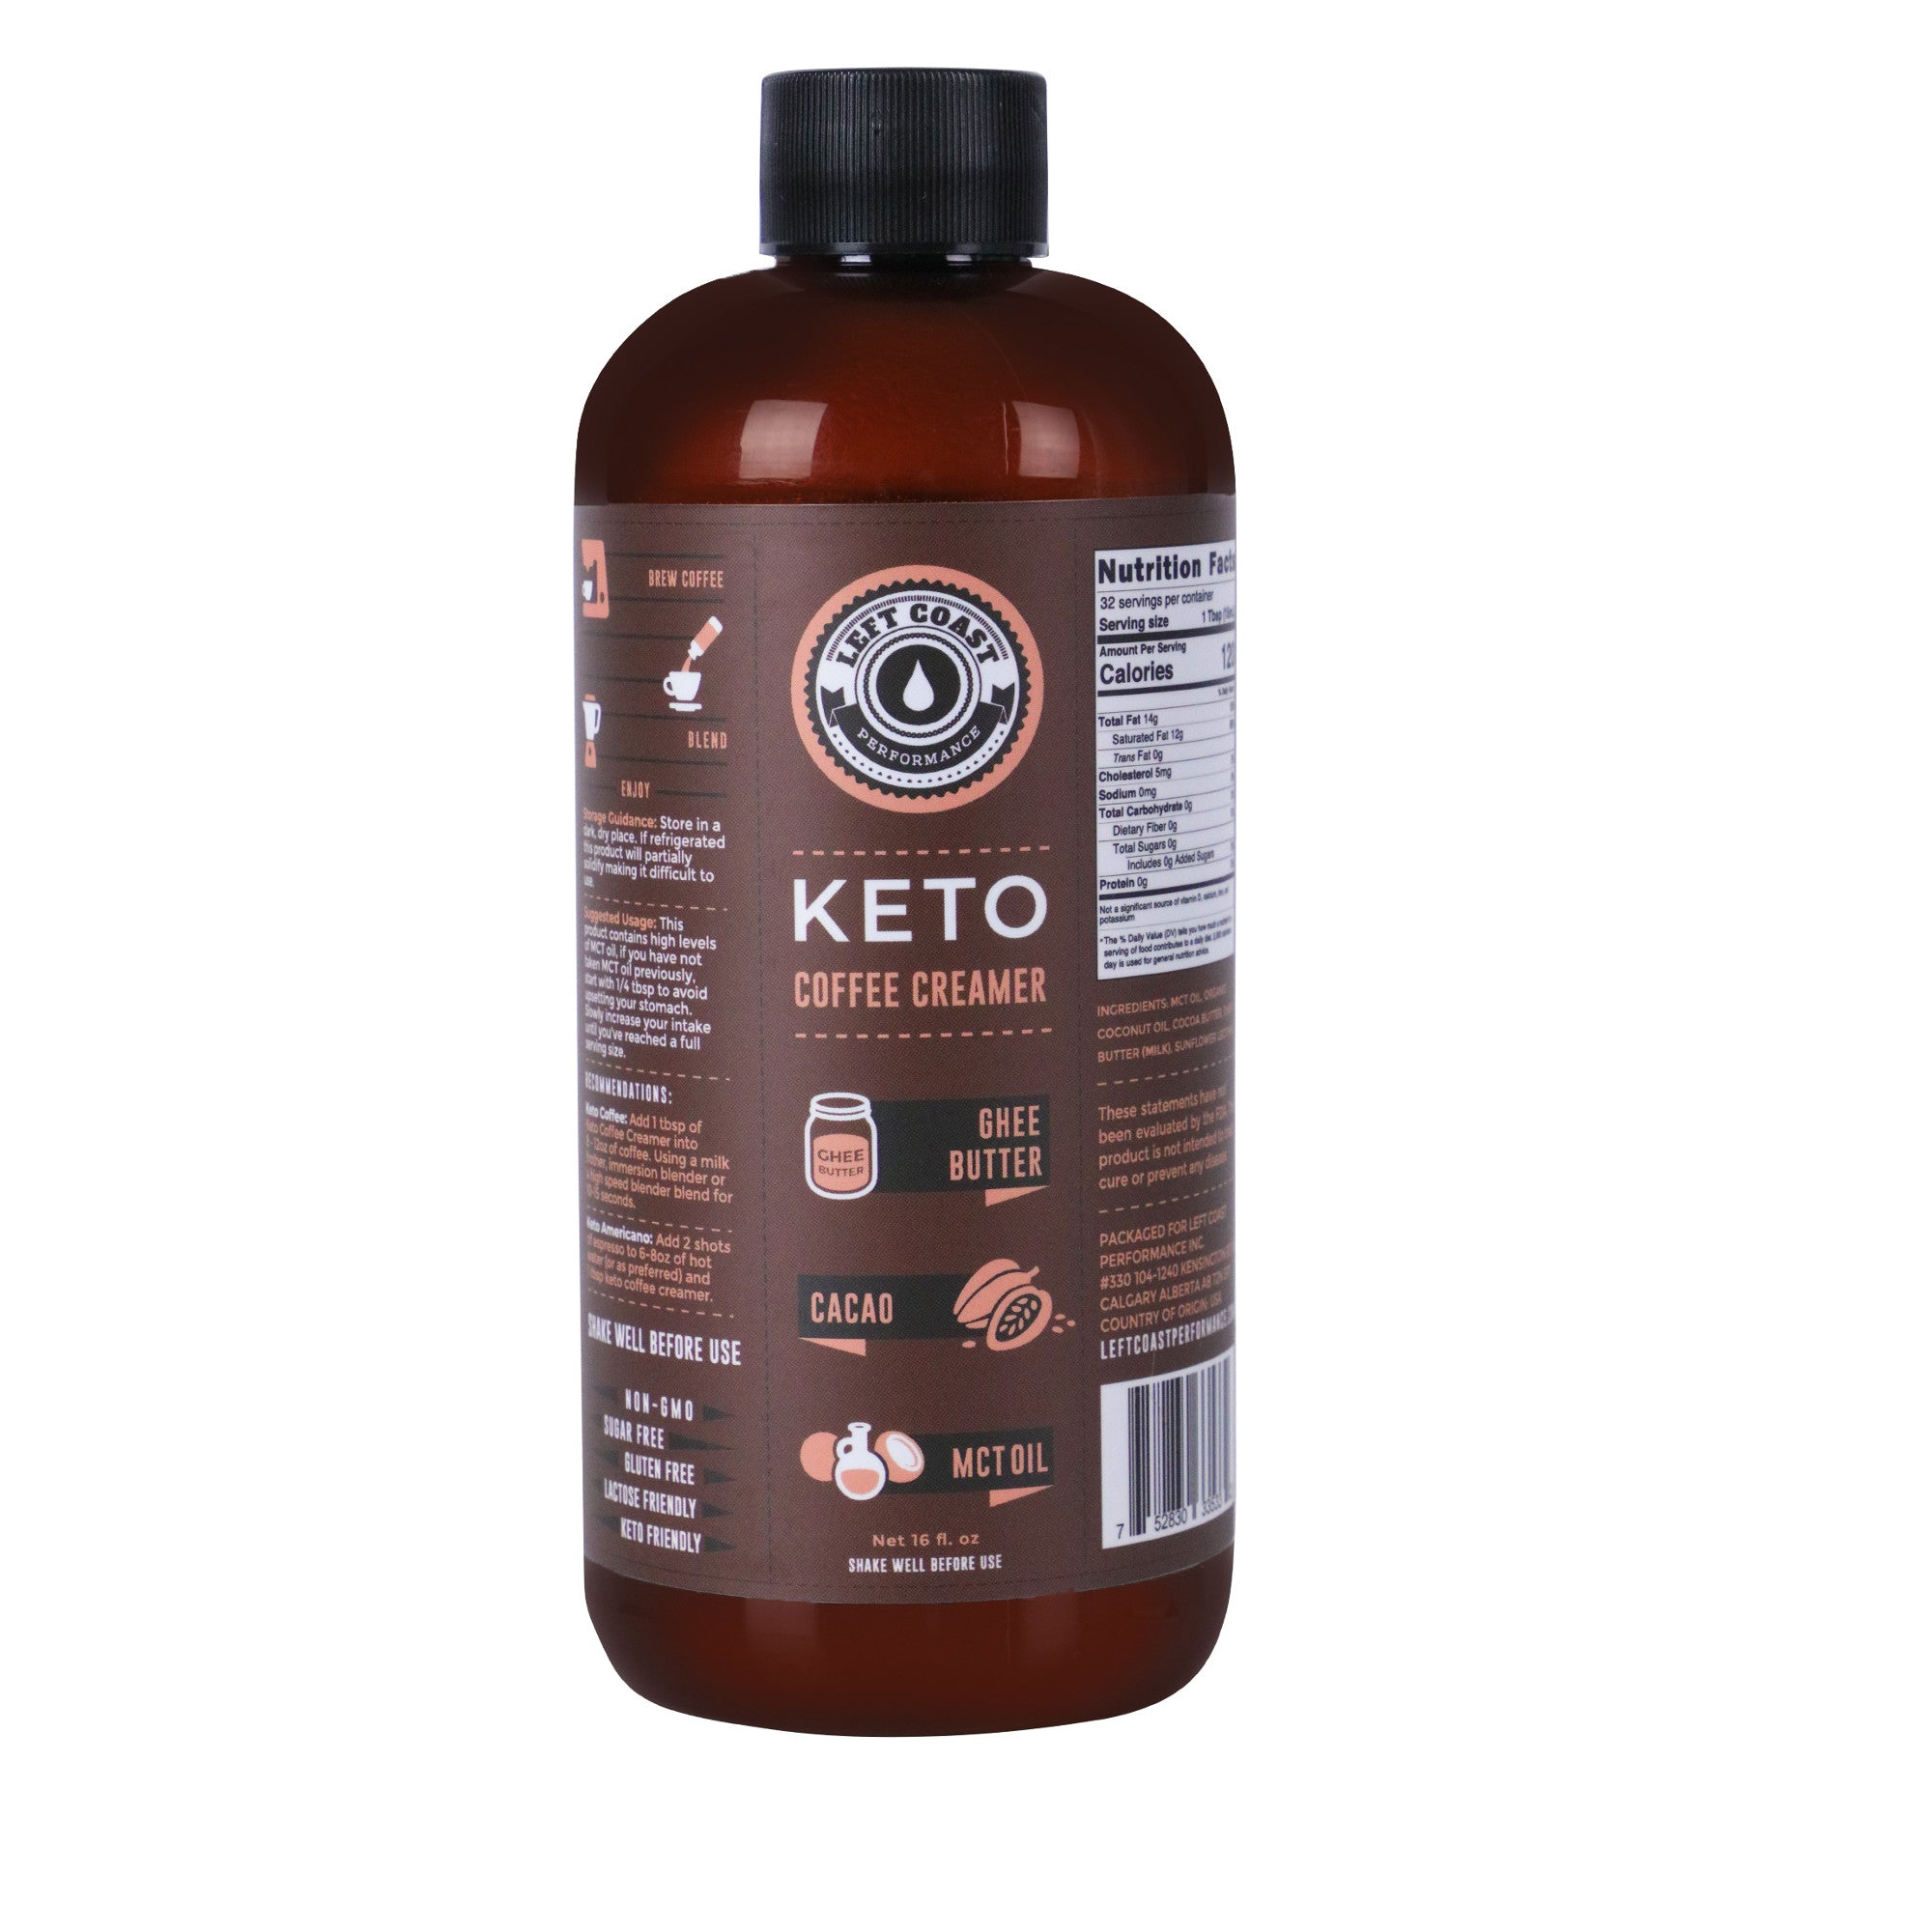 Keto Coffee Creamer with MCT Oil - 16 fl oz